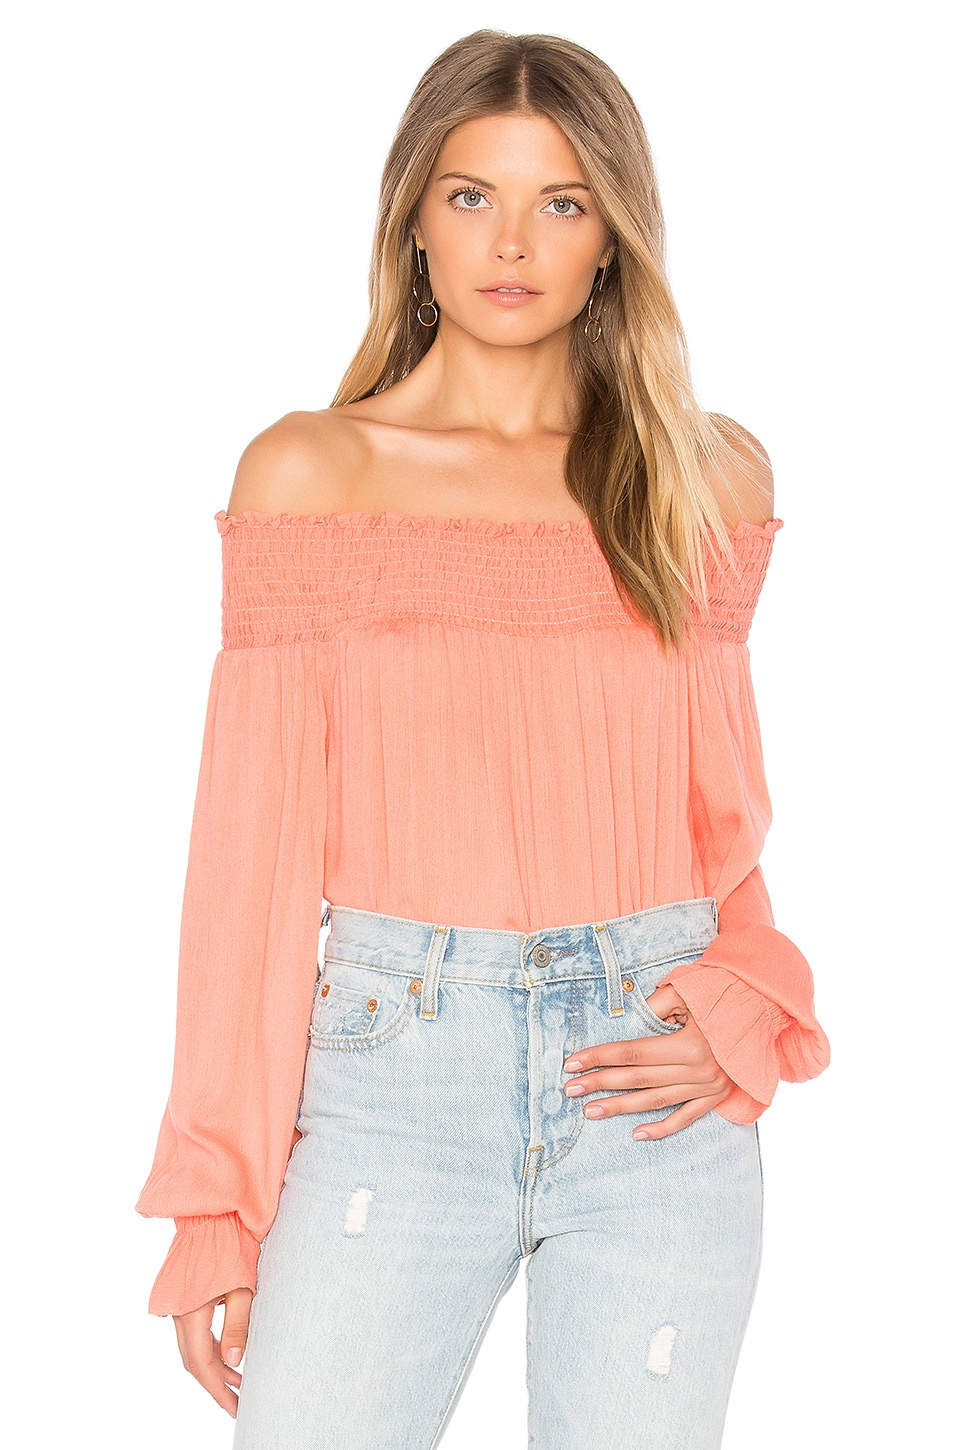 Off Shoulder Long Sleeve Top by Blq Basiq